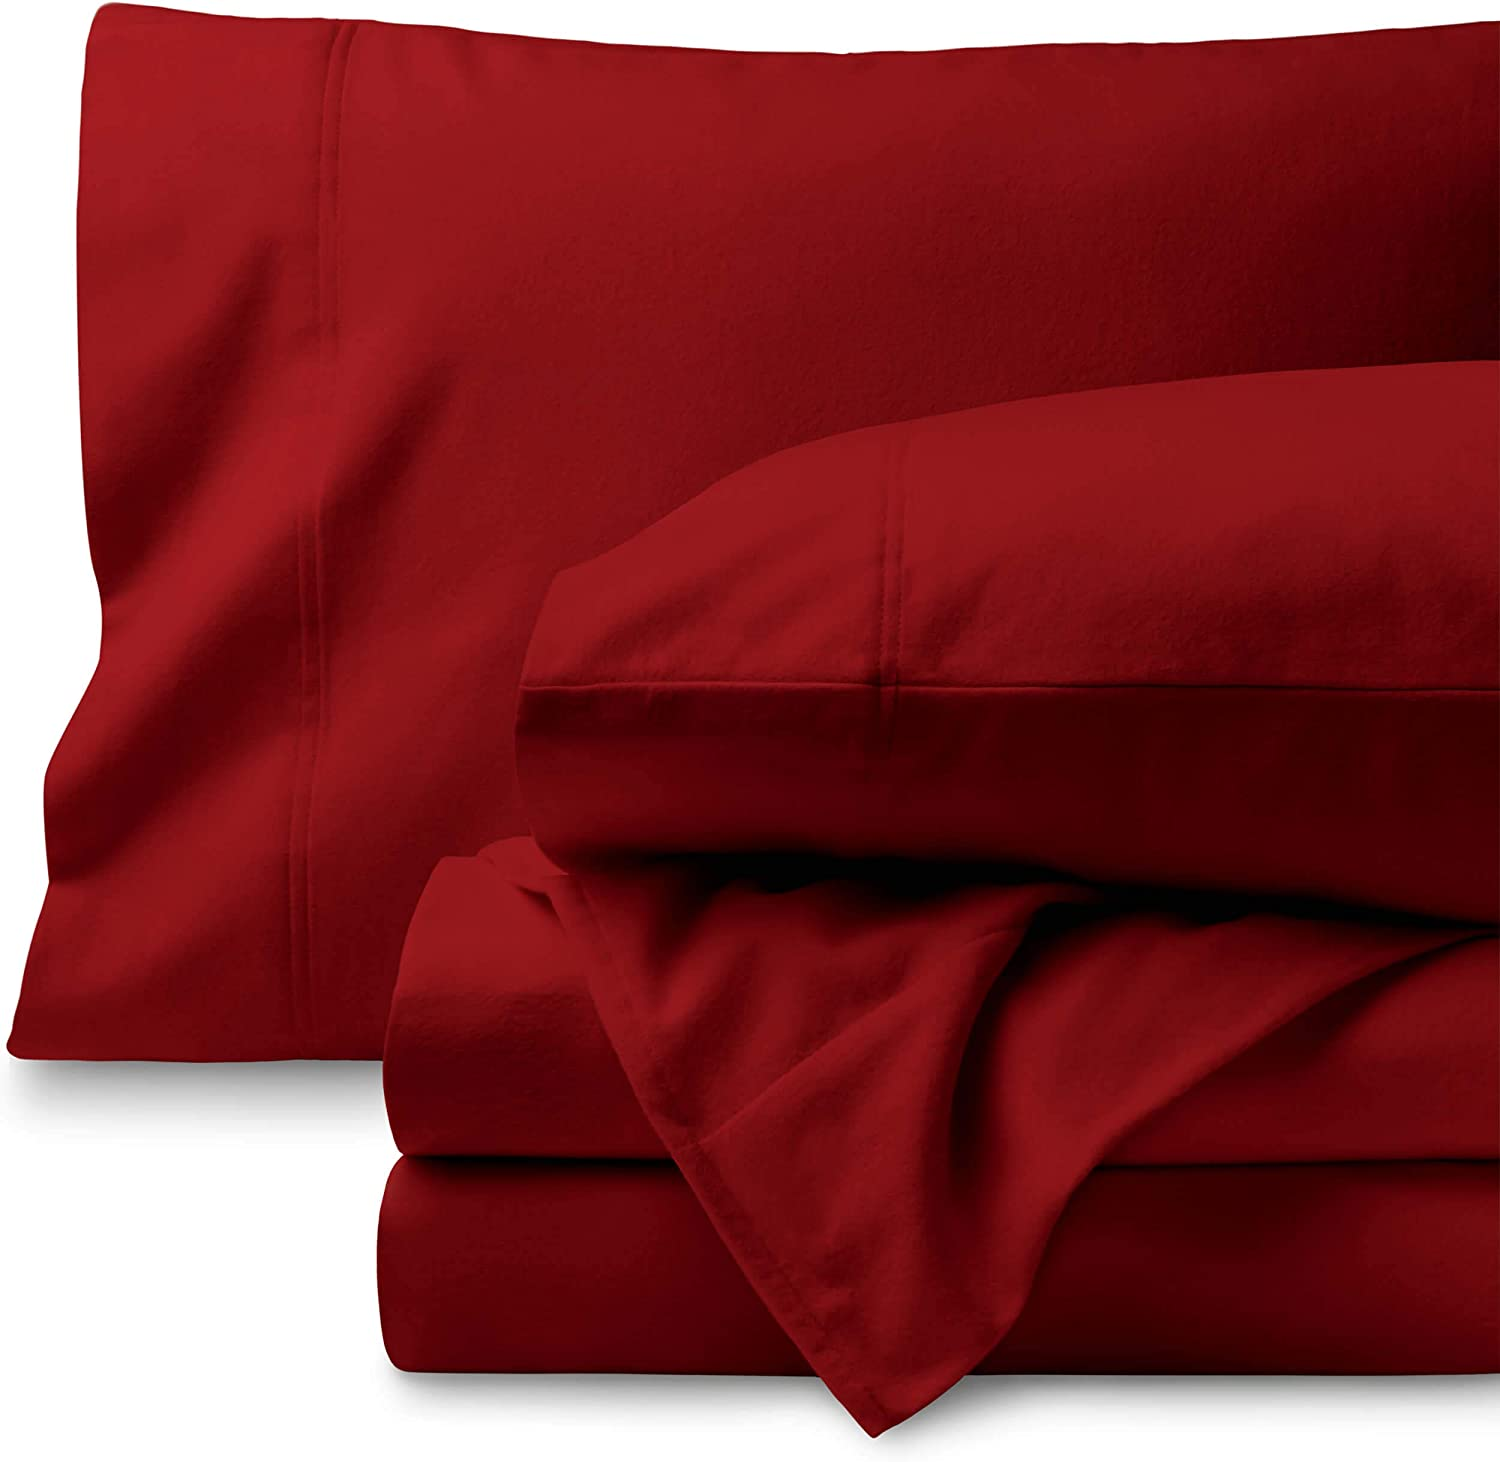 Bare Home Flannel Sheet Set 100% Cotton, Velvety Soft Heavyweight - Double Brushed Flannel - Deep Pocket (Queen, Red)